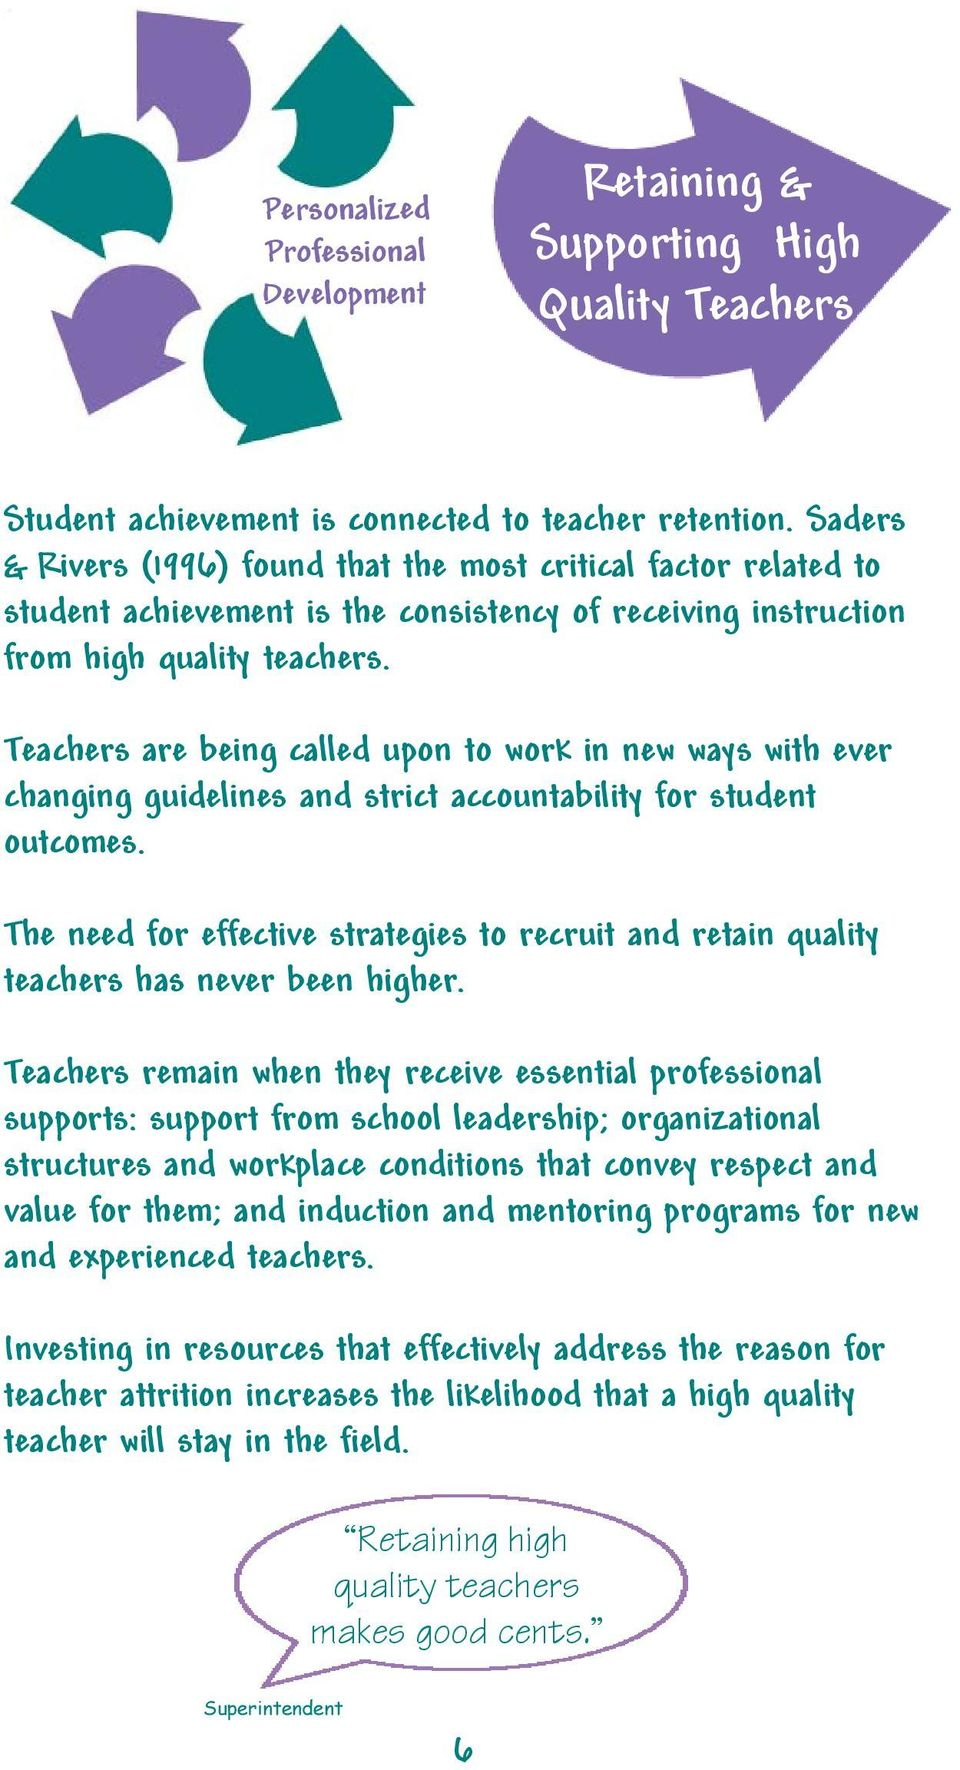 Teachers are being called upon to work in new ways with ever changing guidelines and strict accountability for student outcomes.